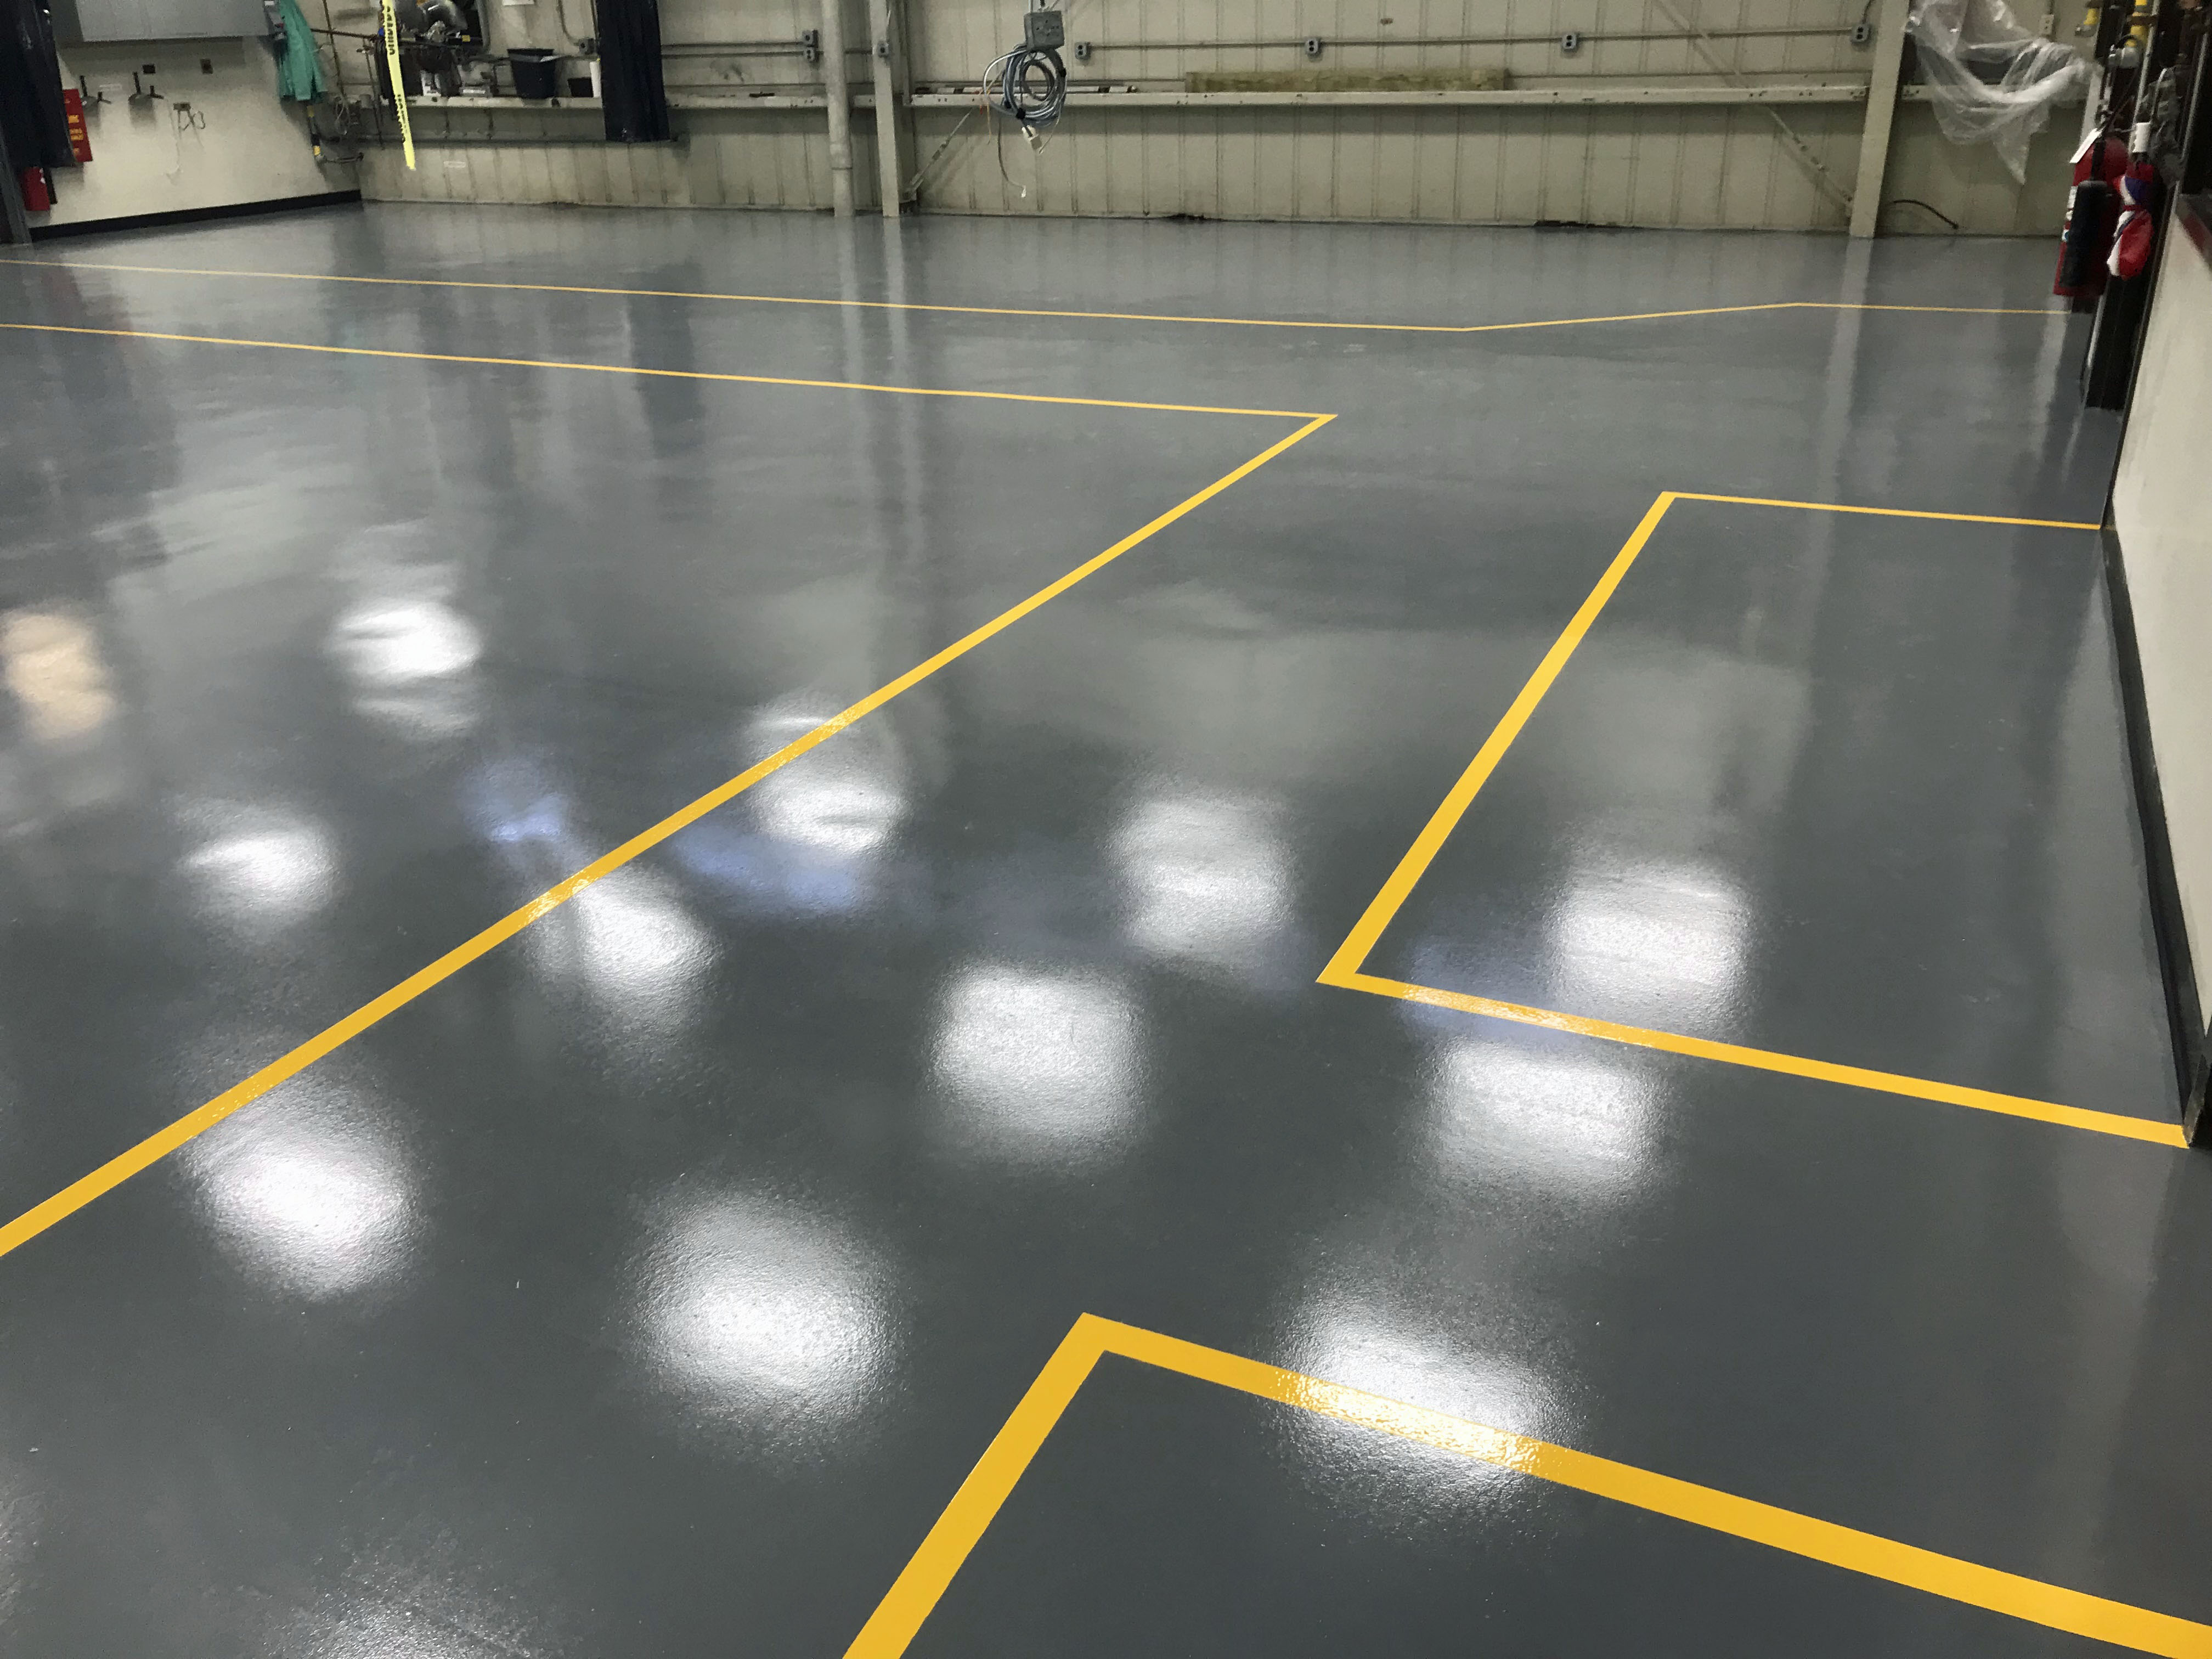 Garage Epoxy Cure Time Benefits Of Epoxy Floor Coatings In Basements Garages And Other